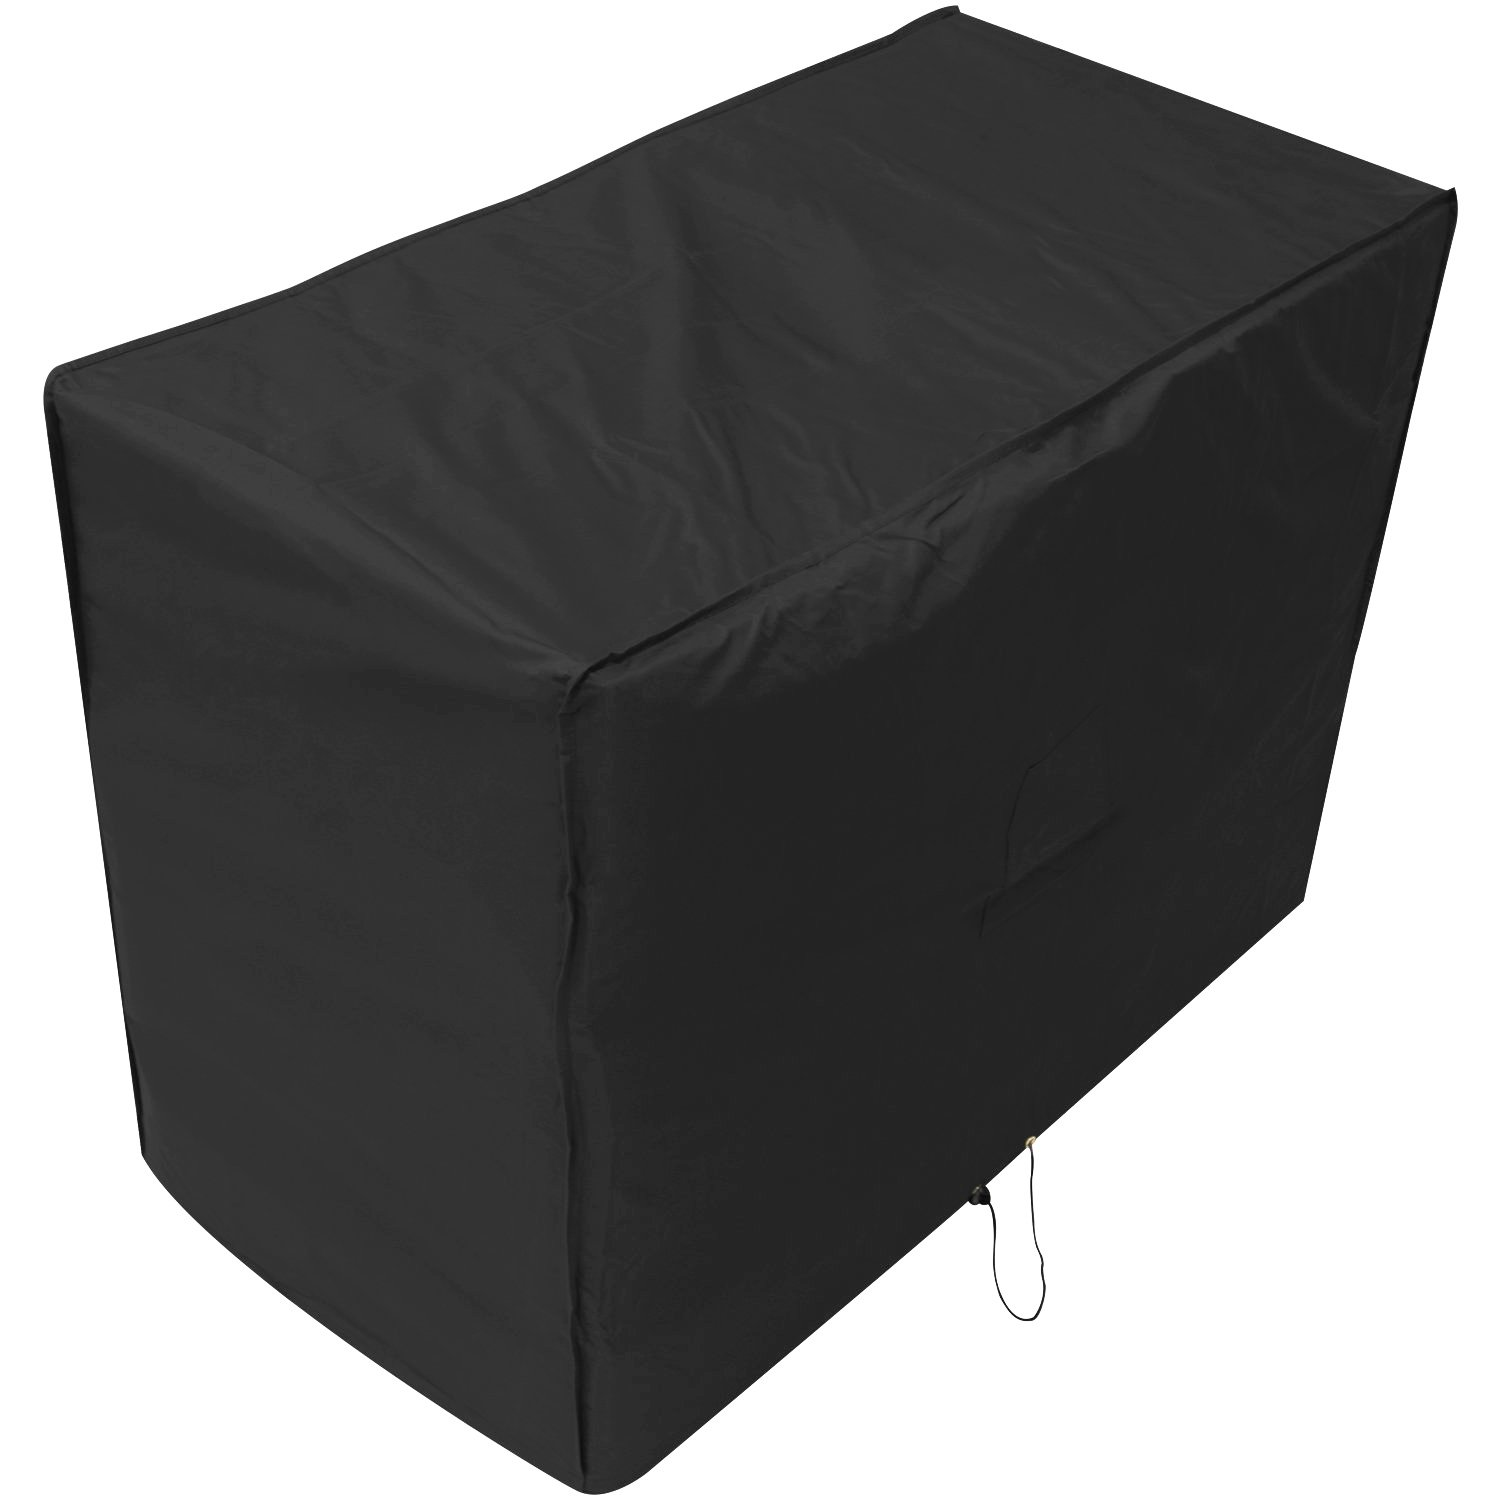 Black 2 Seater Outdoor Garden Patio Bench Cover 0.9m x 1.34m x 0.68m/3ft x 4.4ft x 2.2ft 5 YEAR GUARANTEE Woodside